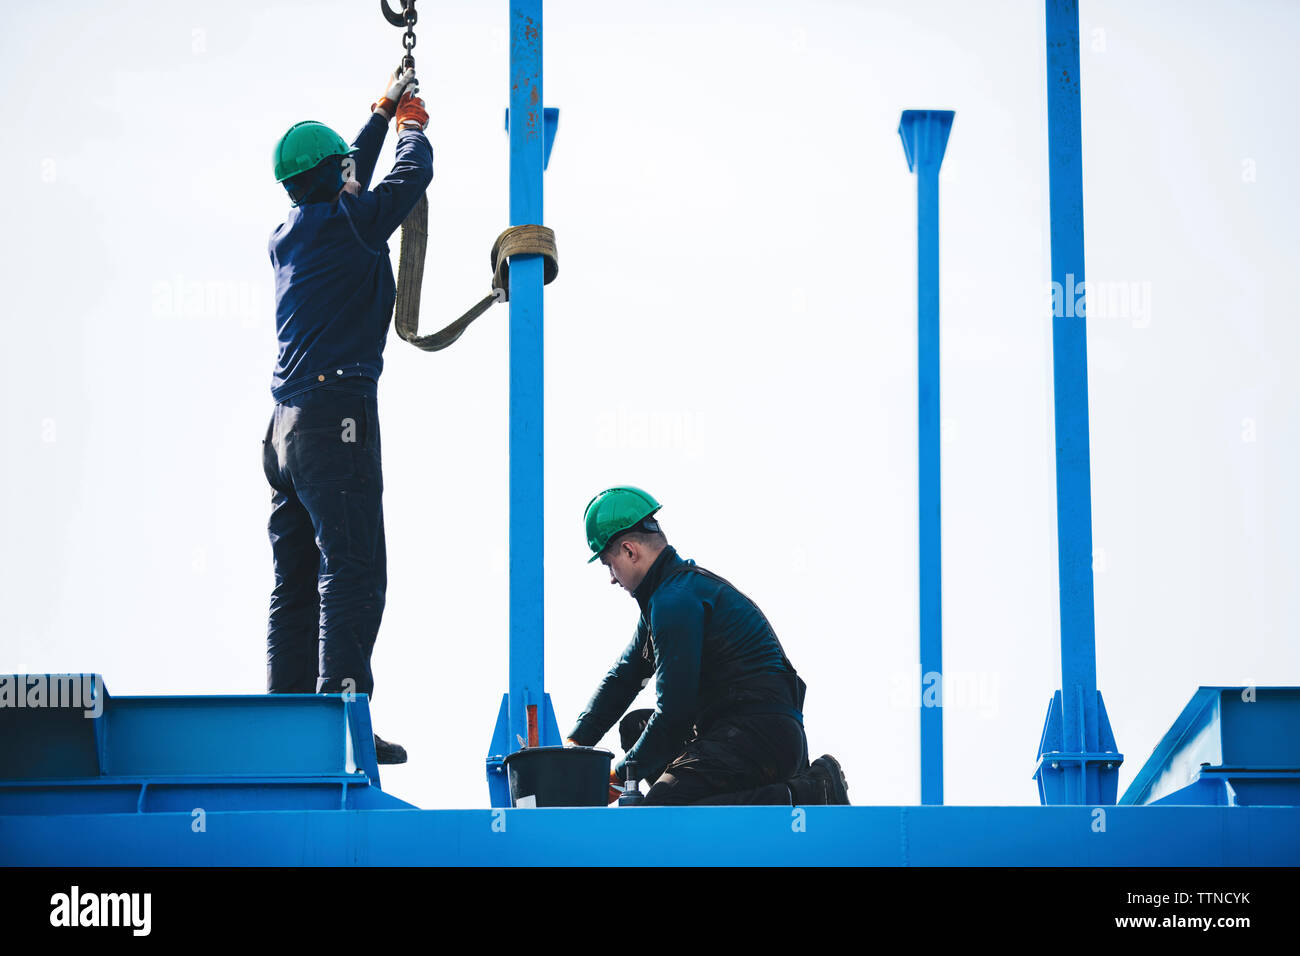 Manual workers working on machinery against clear sky at shipyard - Stock Image